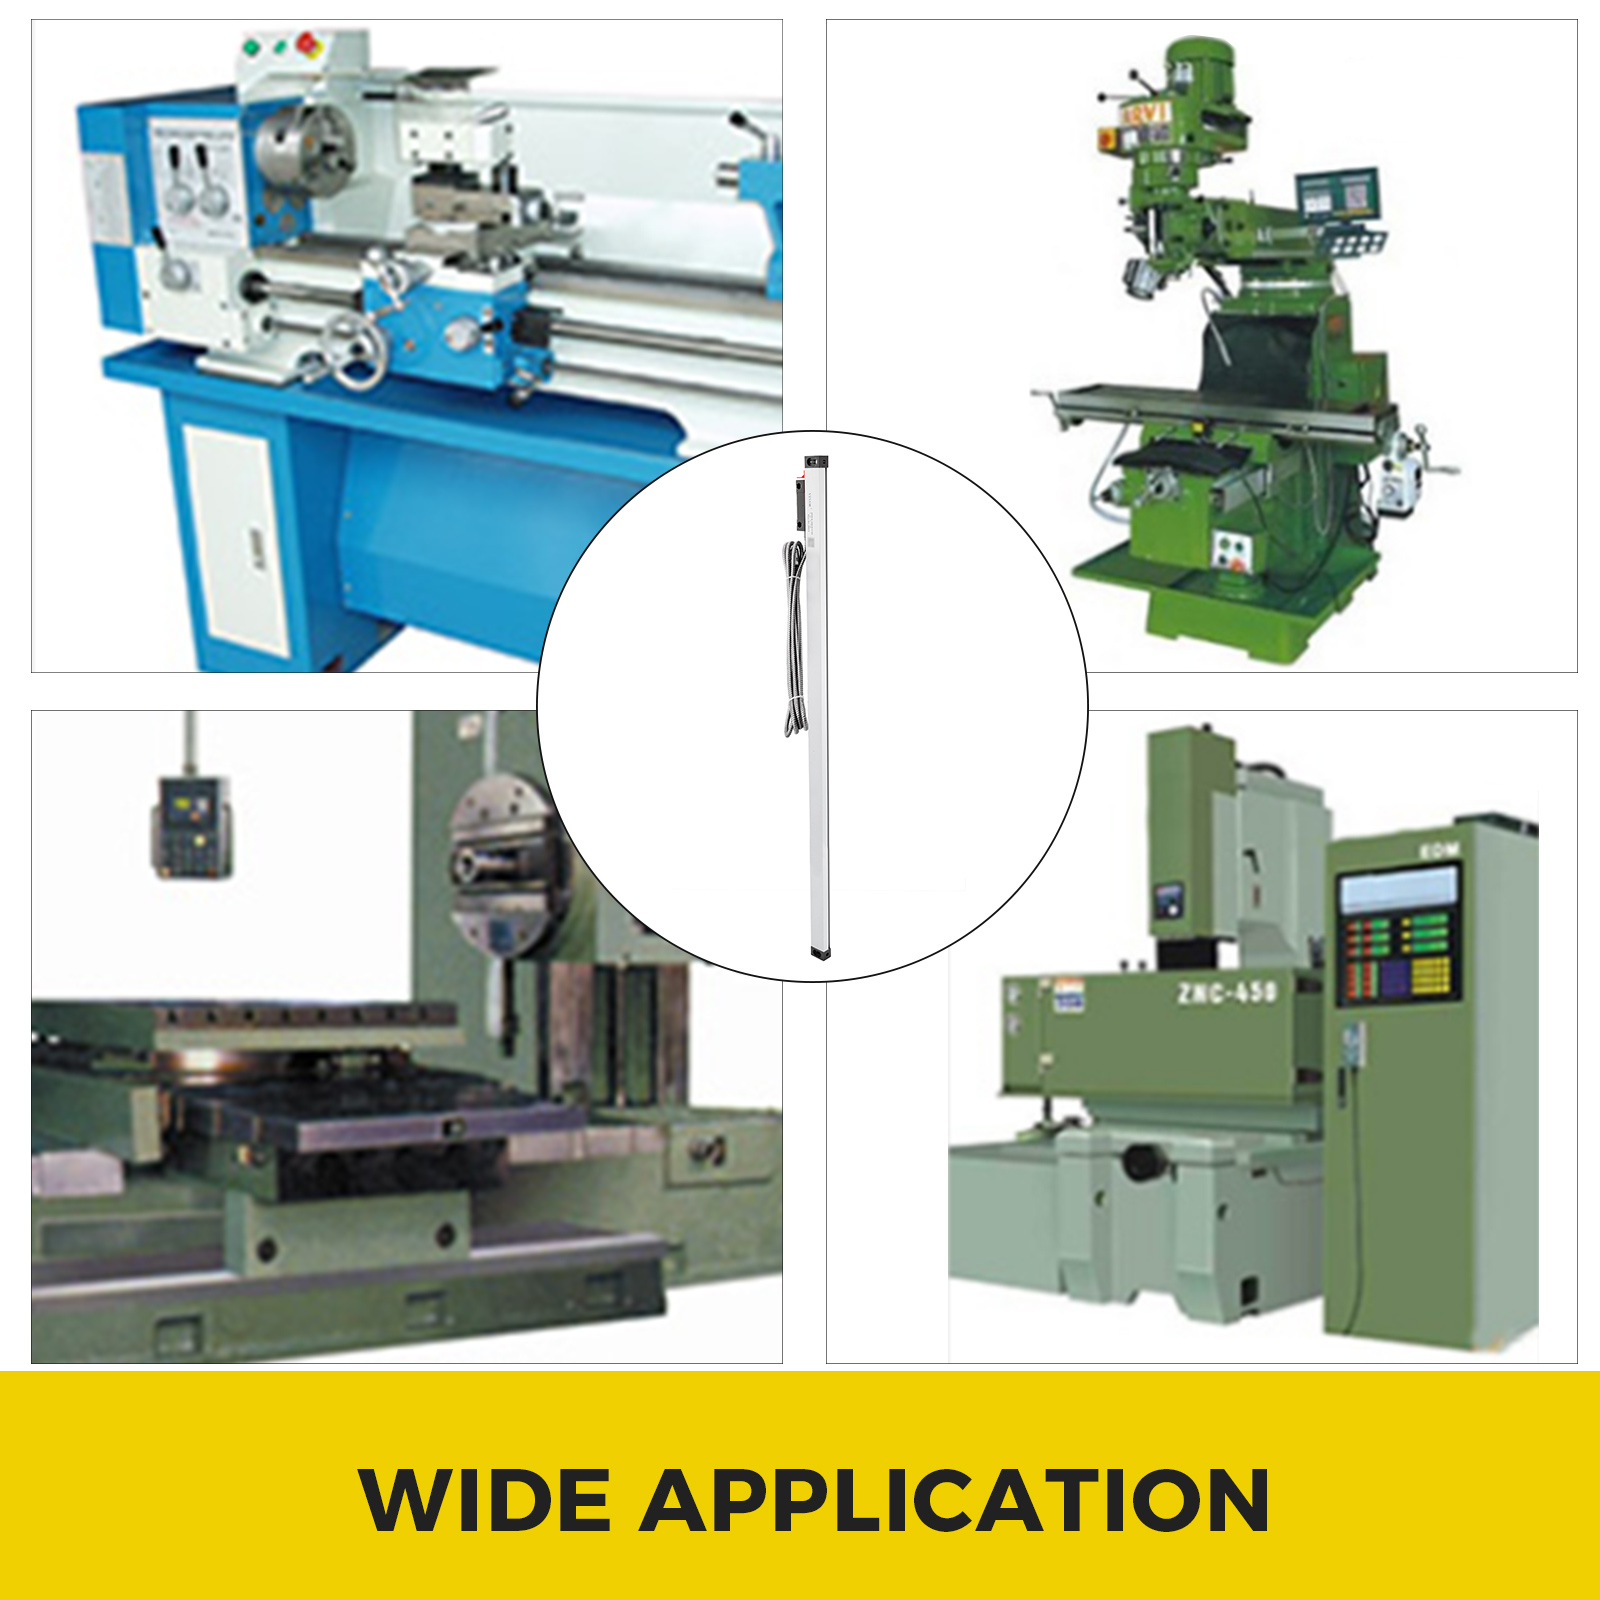 2-3-Axis-Digital-Readout-Linear-Scale-Double-Seal-5-Bearing-System-Grinding thumbnail 175